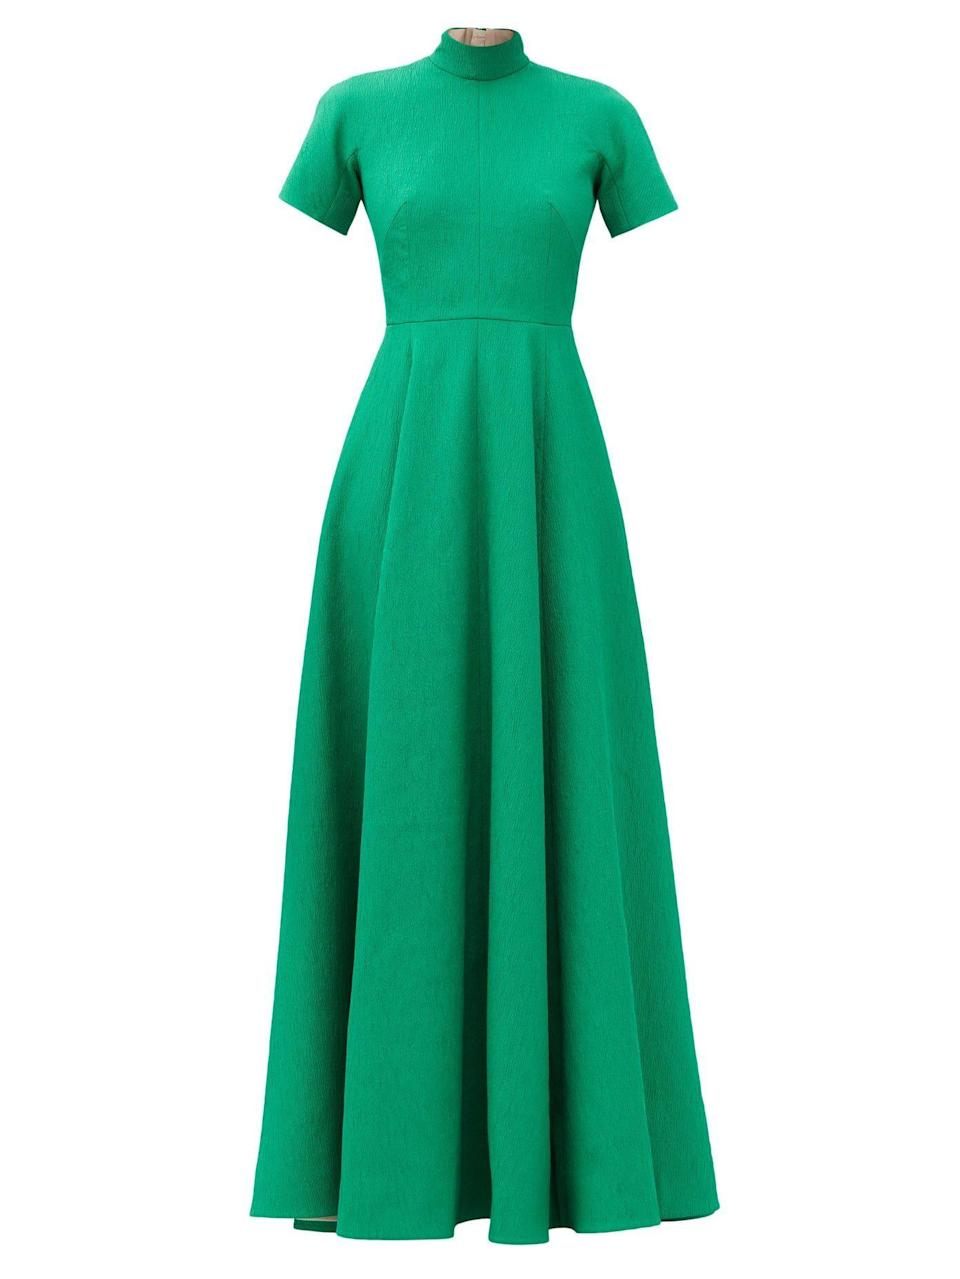 """<p><strong>Emilia Wickstead</strong></p><p>matchesfashion.com</p><p><strong>$3160.00</strong></p><p><a href=""""https://go.redirectingat.com?id=74968X1596630&url=https%3A%2F%2Fwww.matchesfashion.com%2Fus%2Fproducts%2F1387046&sref=https%3A%2F%2Fwww.townandcountrymag.com%2Fstyle%2Ffashion-trends%2Fg10344923%2Fkate-middleton-favorite-fashion-brands-designers%2F"""" rel=""""nofollow noopener"""" target=""""_blank"""" data-ylk=""""slk:Shop Now"""" class=""""link rapid-noclick-resp"""">Shop Now</a></p><p>She often wears brightly colored gowns designed by Emilia Wickstead to formal events.</p>"""